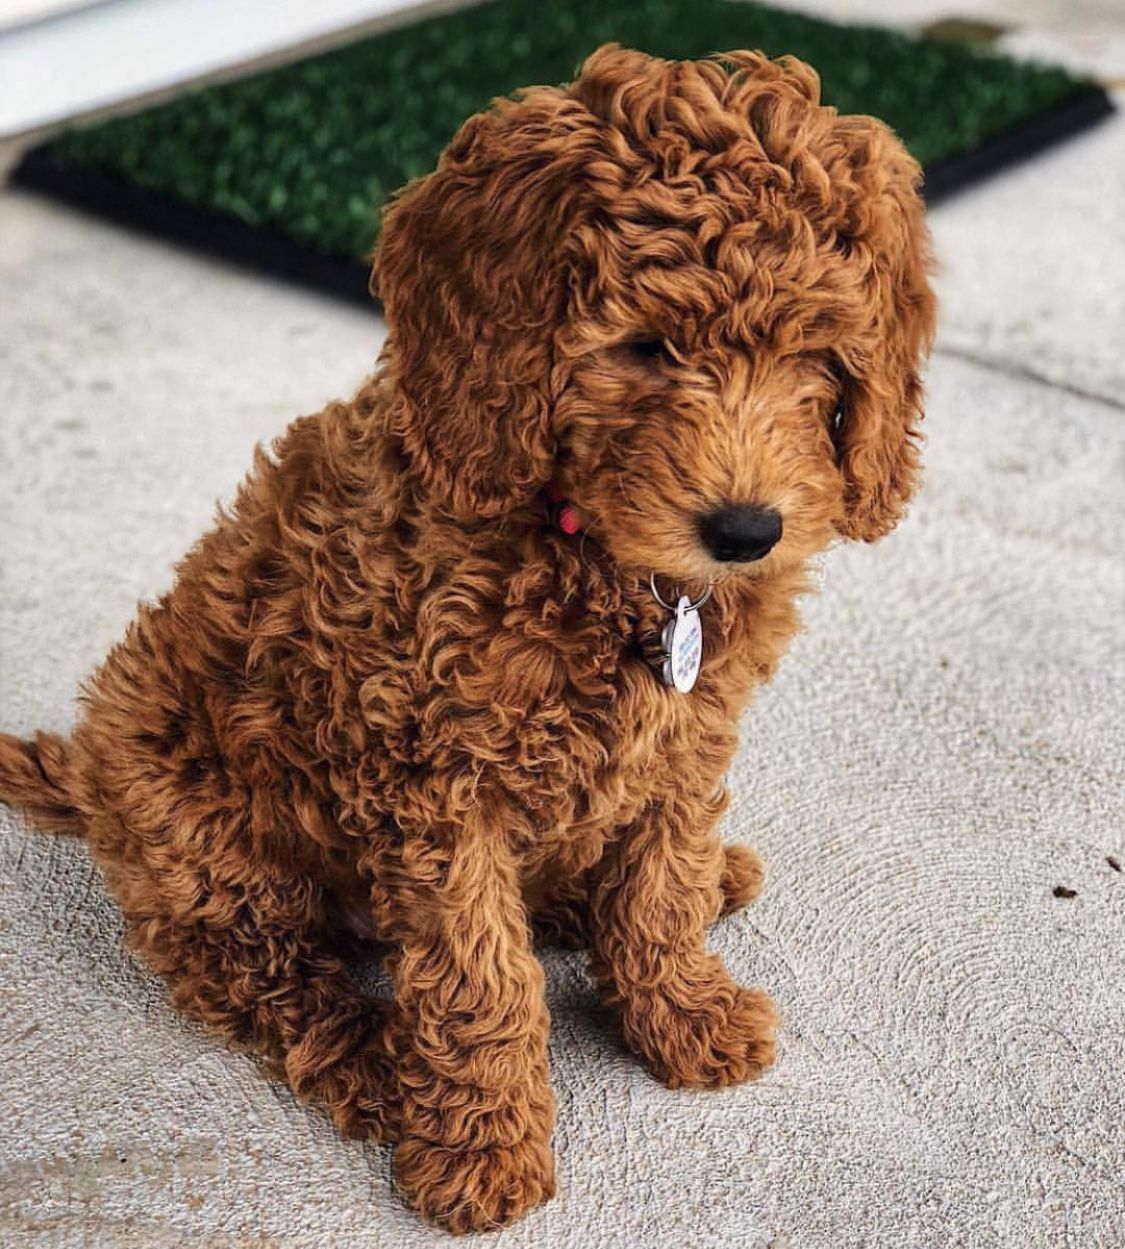 Pin By Anna Wo On Puppy Love Mini Goldendoodle Puppies Goldendoodle Puppy Poodle Puppy